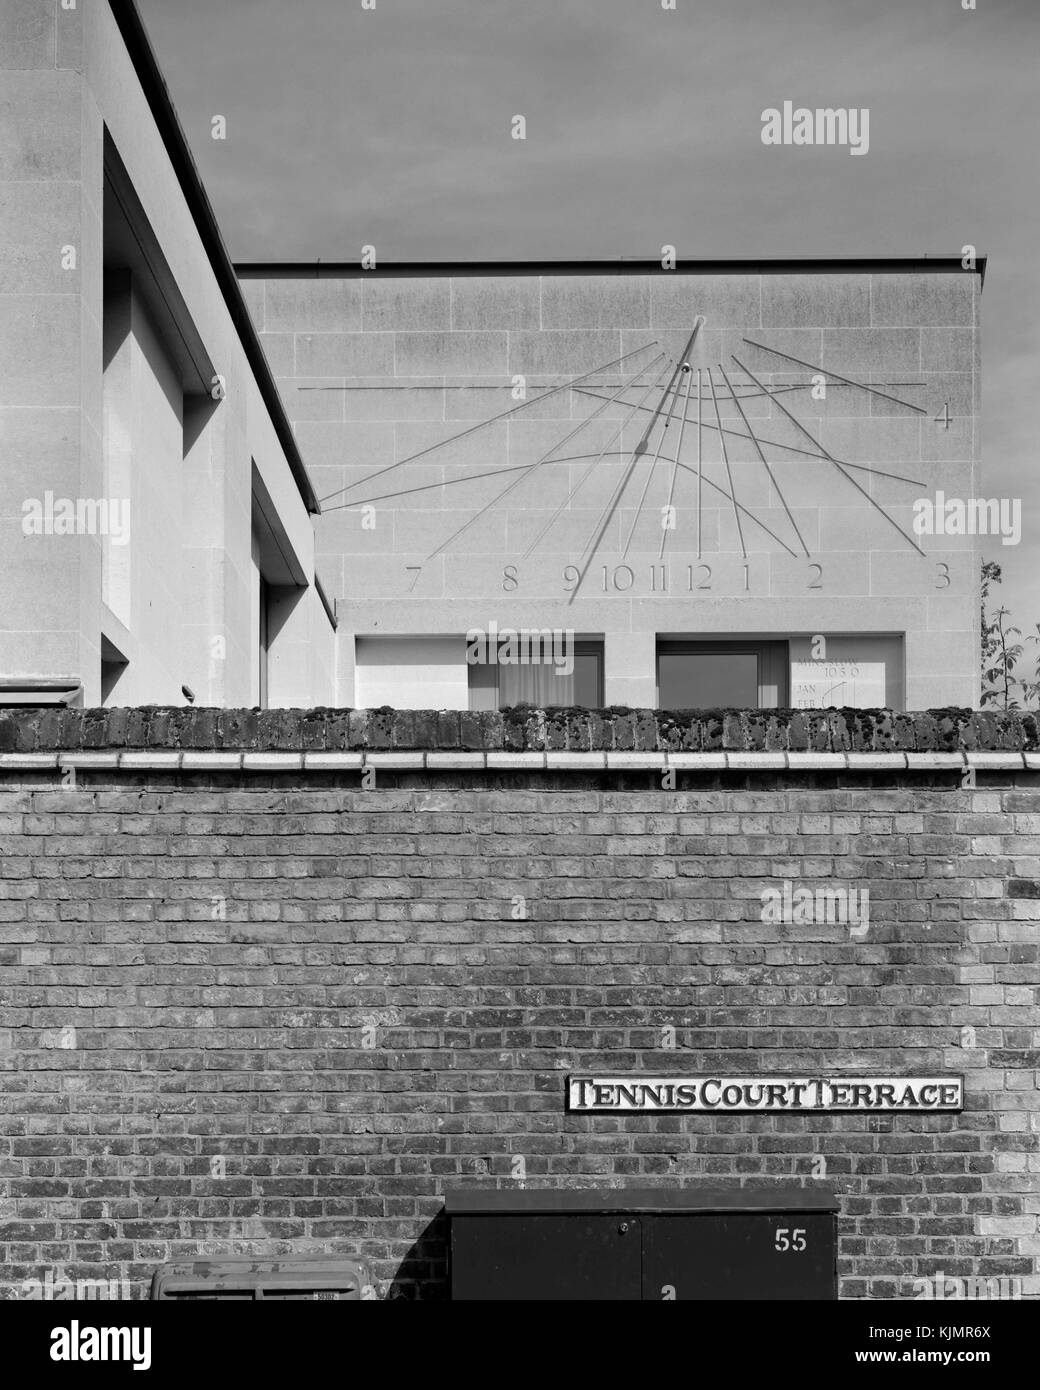 Sundial on corner of Tennis Court Road and Tennis Court Terrace, Cambridge - Stock Image